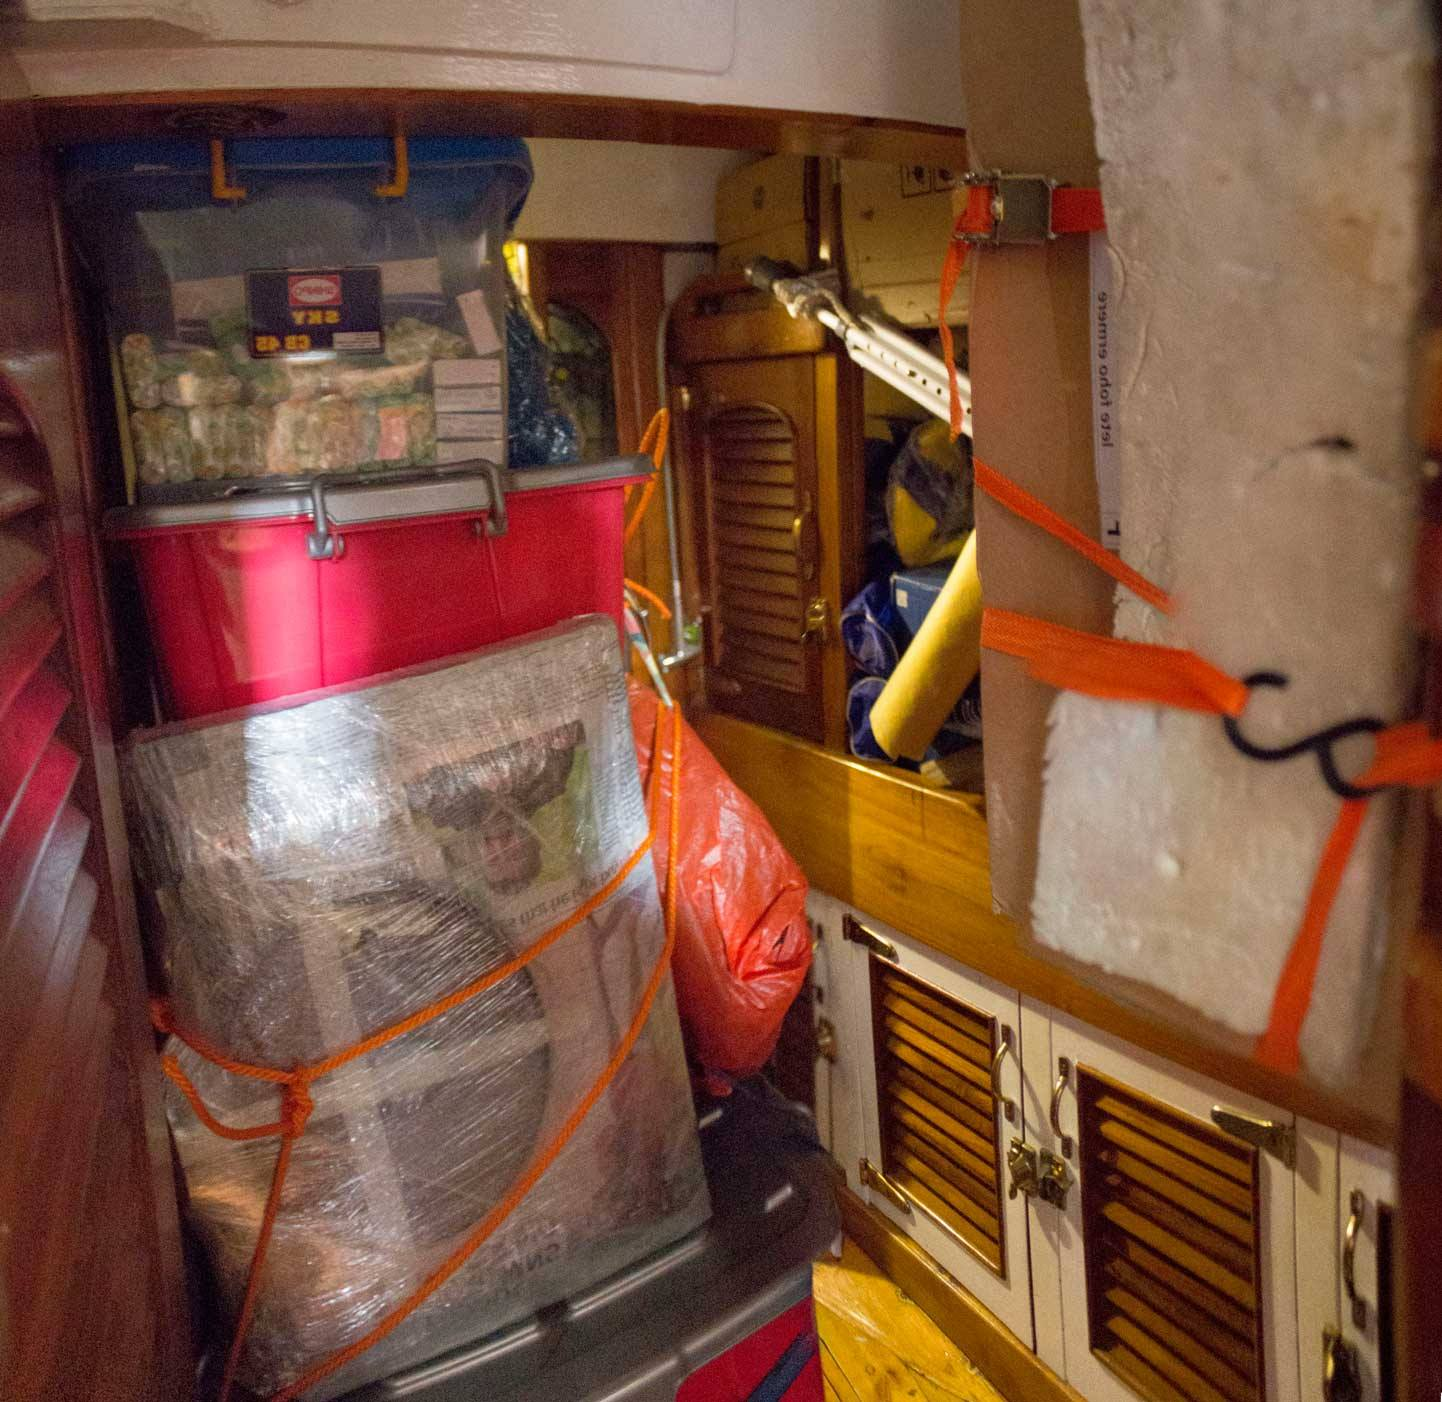 The port and starboard cabins are stuffed. All the toilets are packed also.